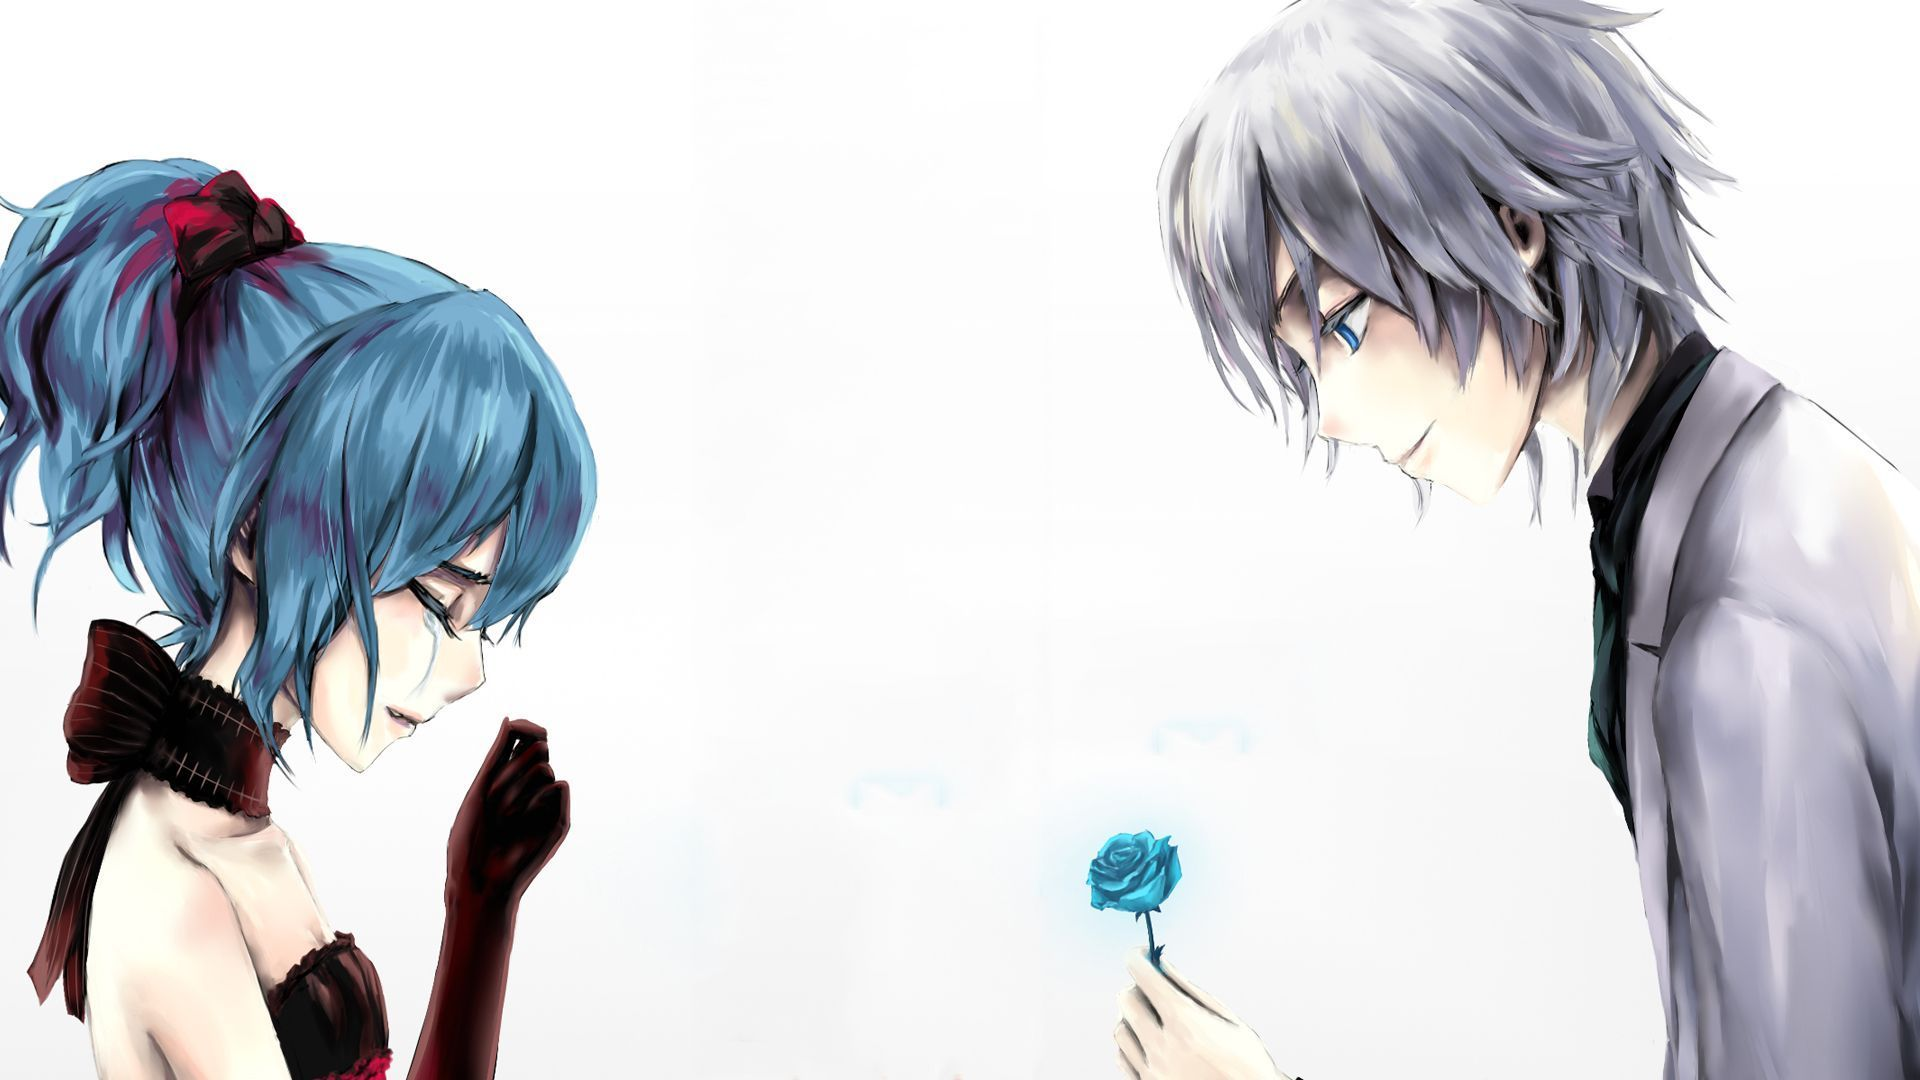 Anime Love Couple Boy Giving Rose To Cry Girl Wallpaper Anime